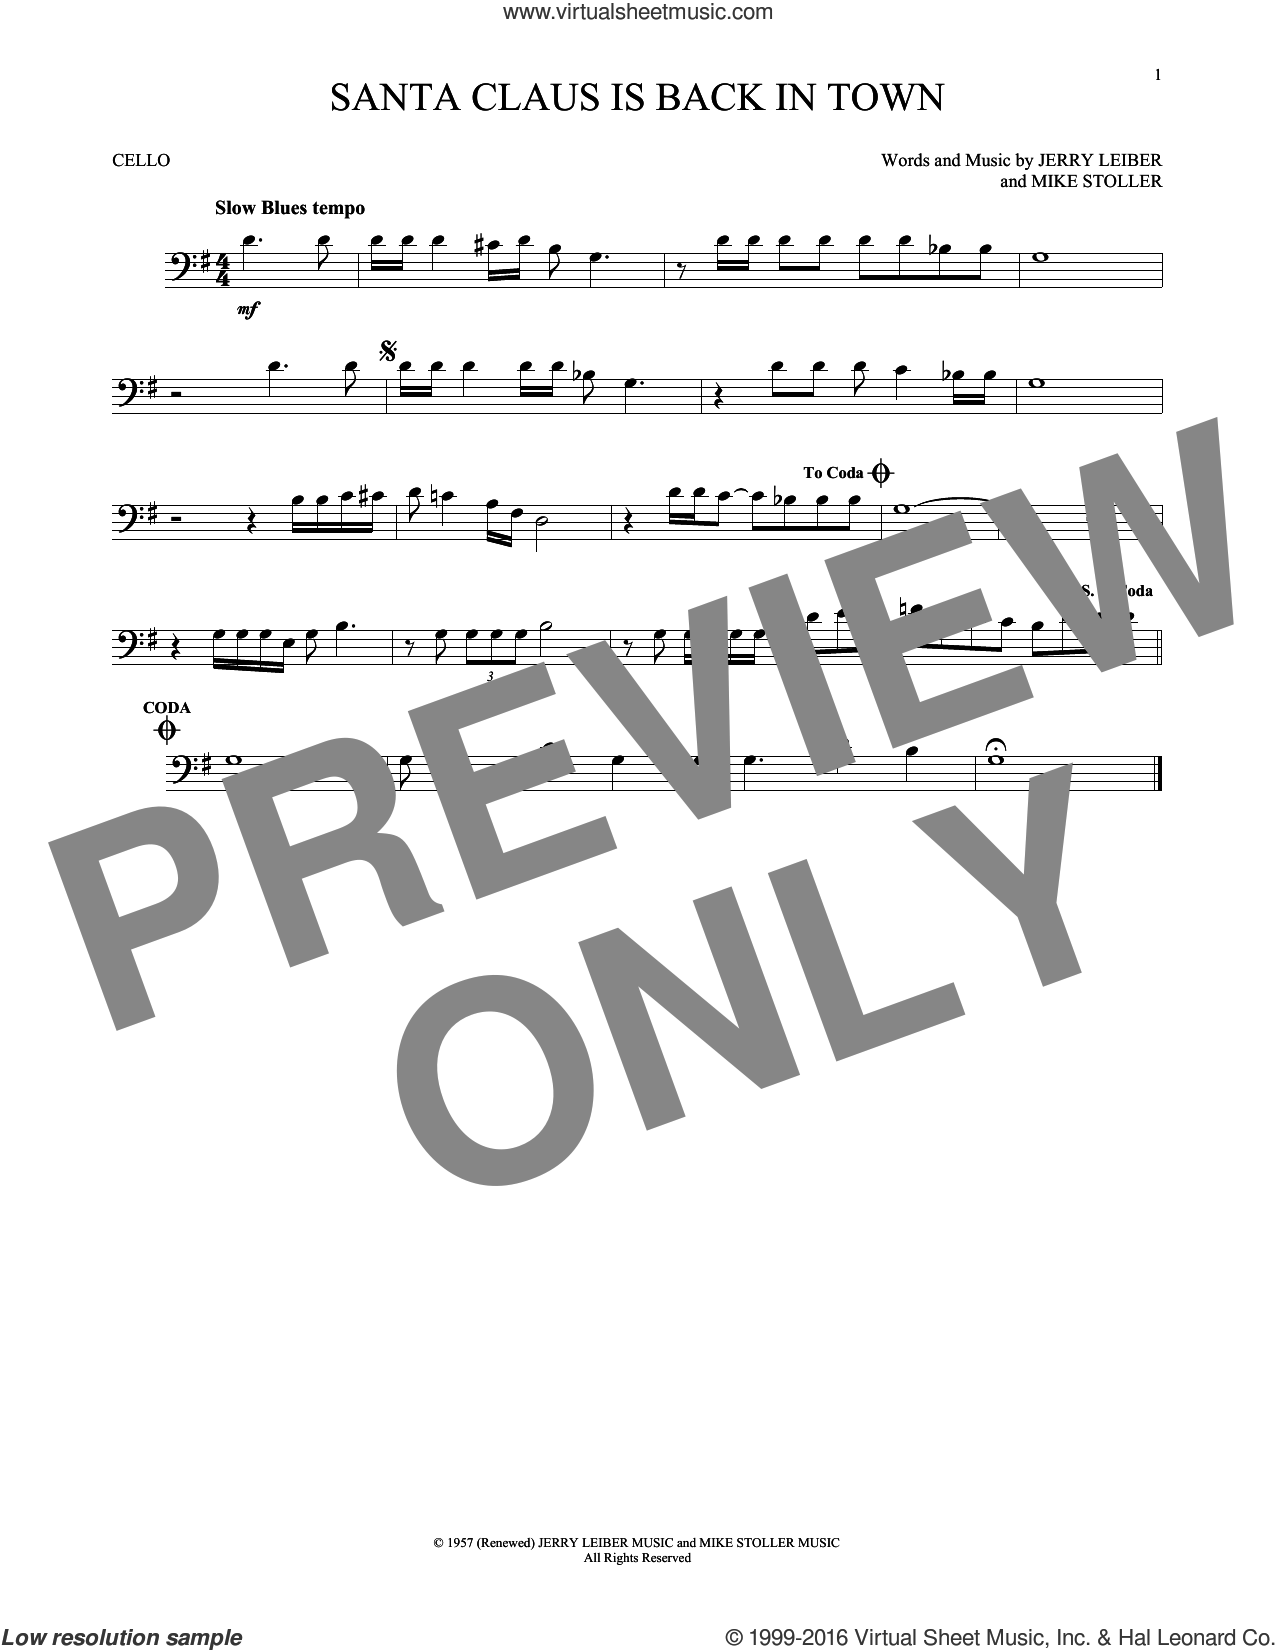 Santa Claus Is Back In Town sheet music for cello solo by Elvis Presley, Jerry Leiber and Mike Stoller, intermediate skill level